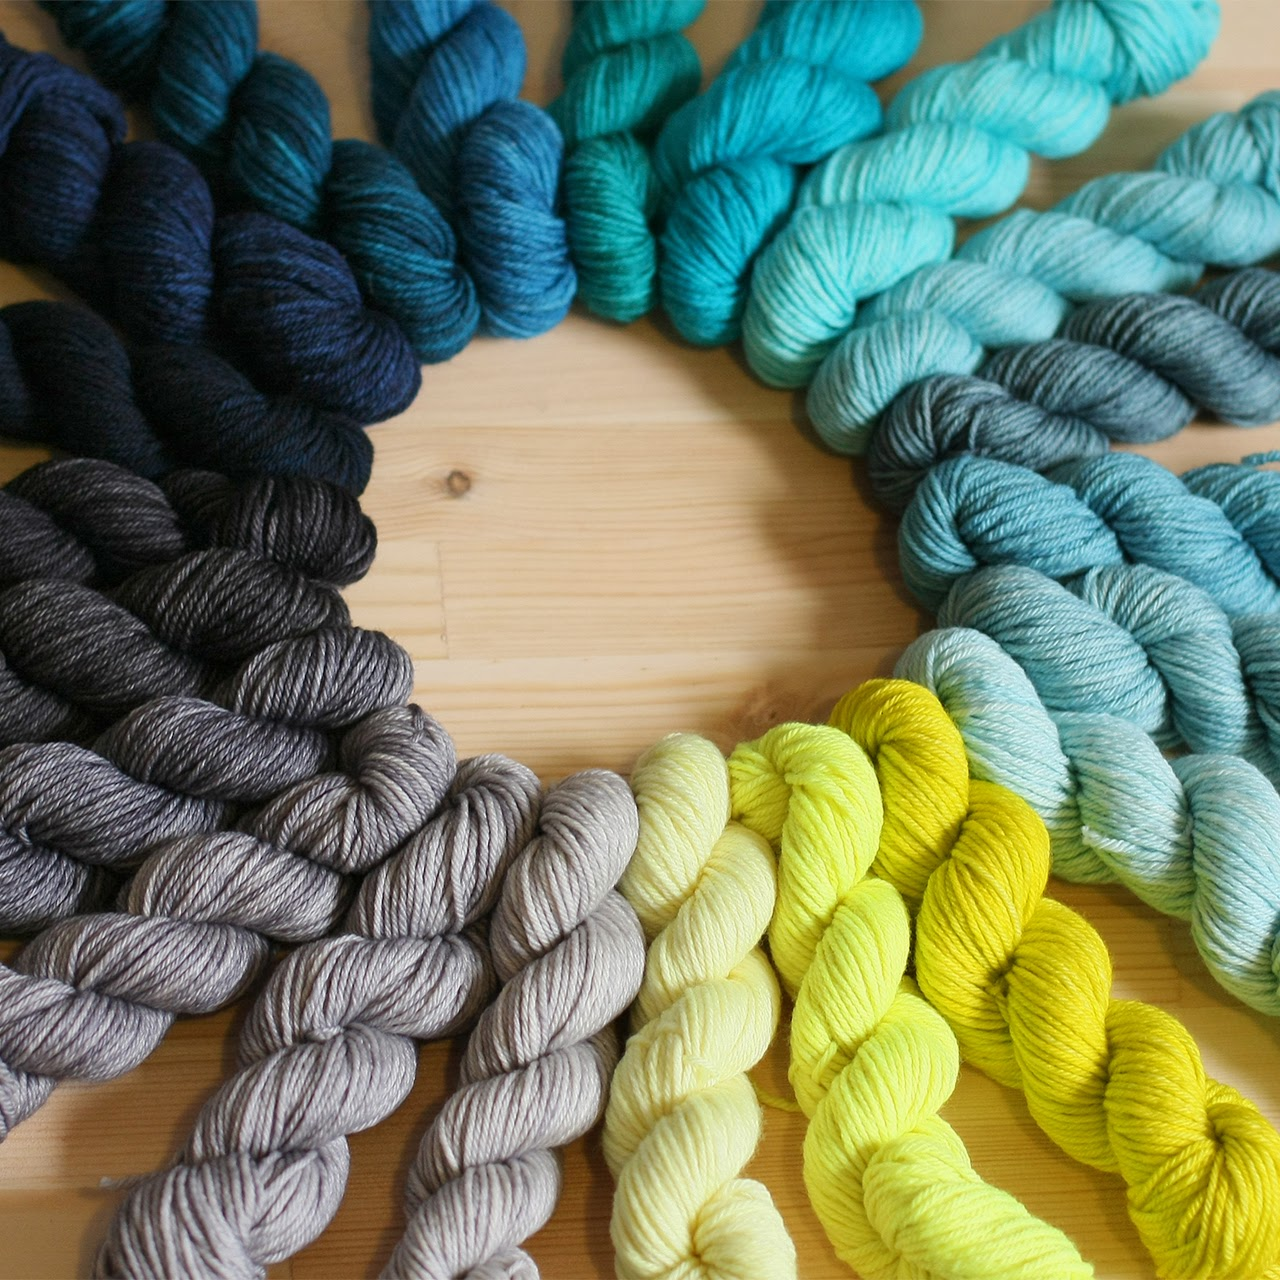 RAINBOW HEIRLOOM  Hand dyed in Edinburgh, Rainbow Heirloom creates blistering brights, deep jewel tones and delicately soft shades. Gorgeous yarns, blanket kits, and bundles of mini skeins in a rainbow of brilliantly vivid colours will be coming to EYF.